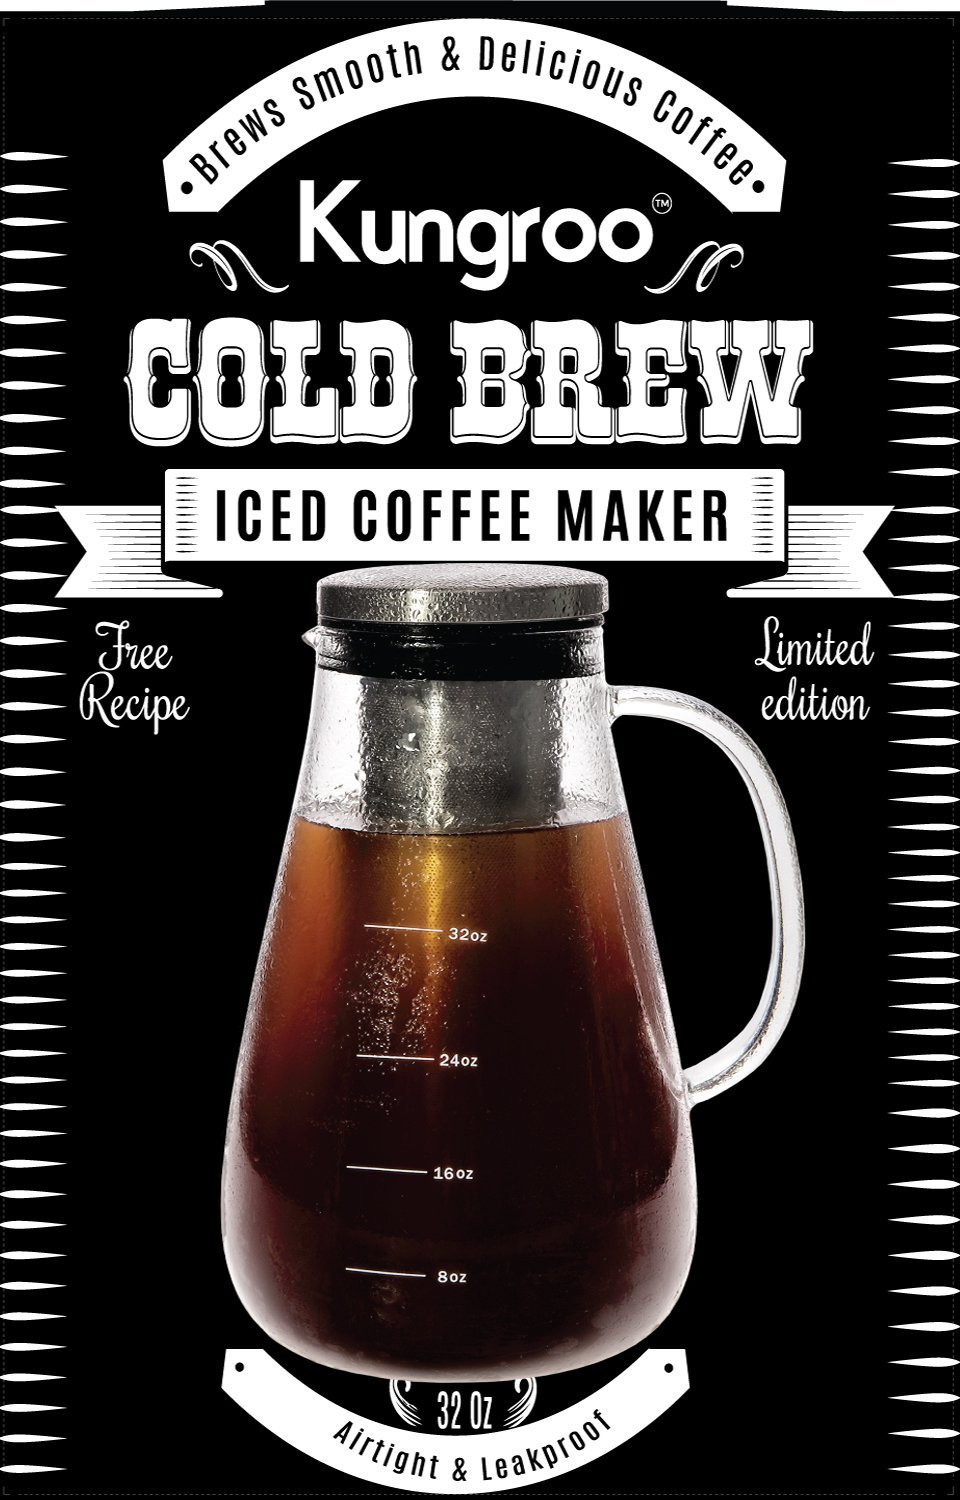 Kungroo Airtight Glass Cold Brew Iced Coffee Maker Pitcher Pot, 1 Quart